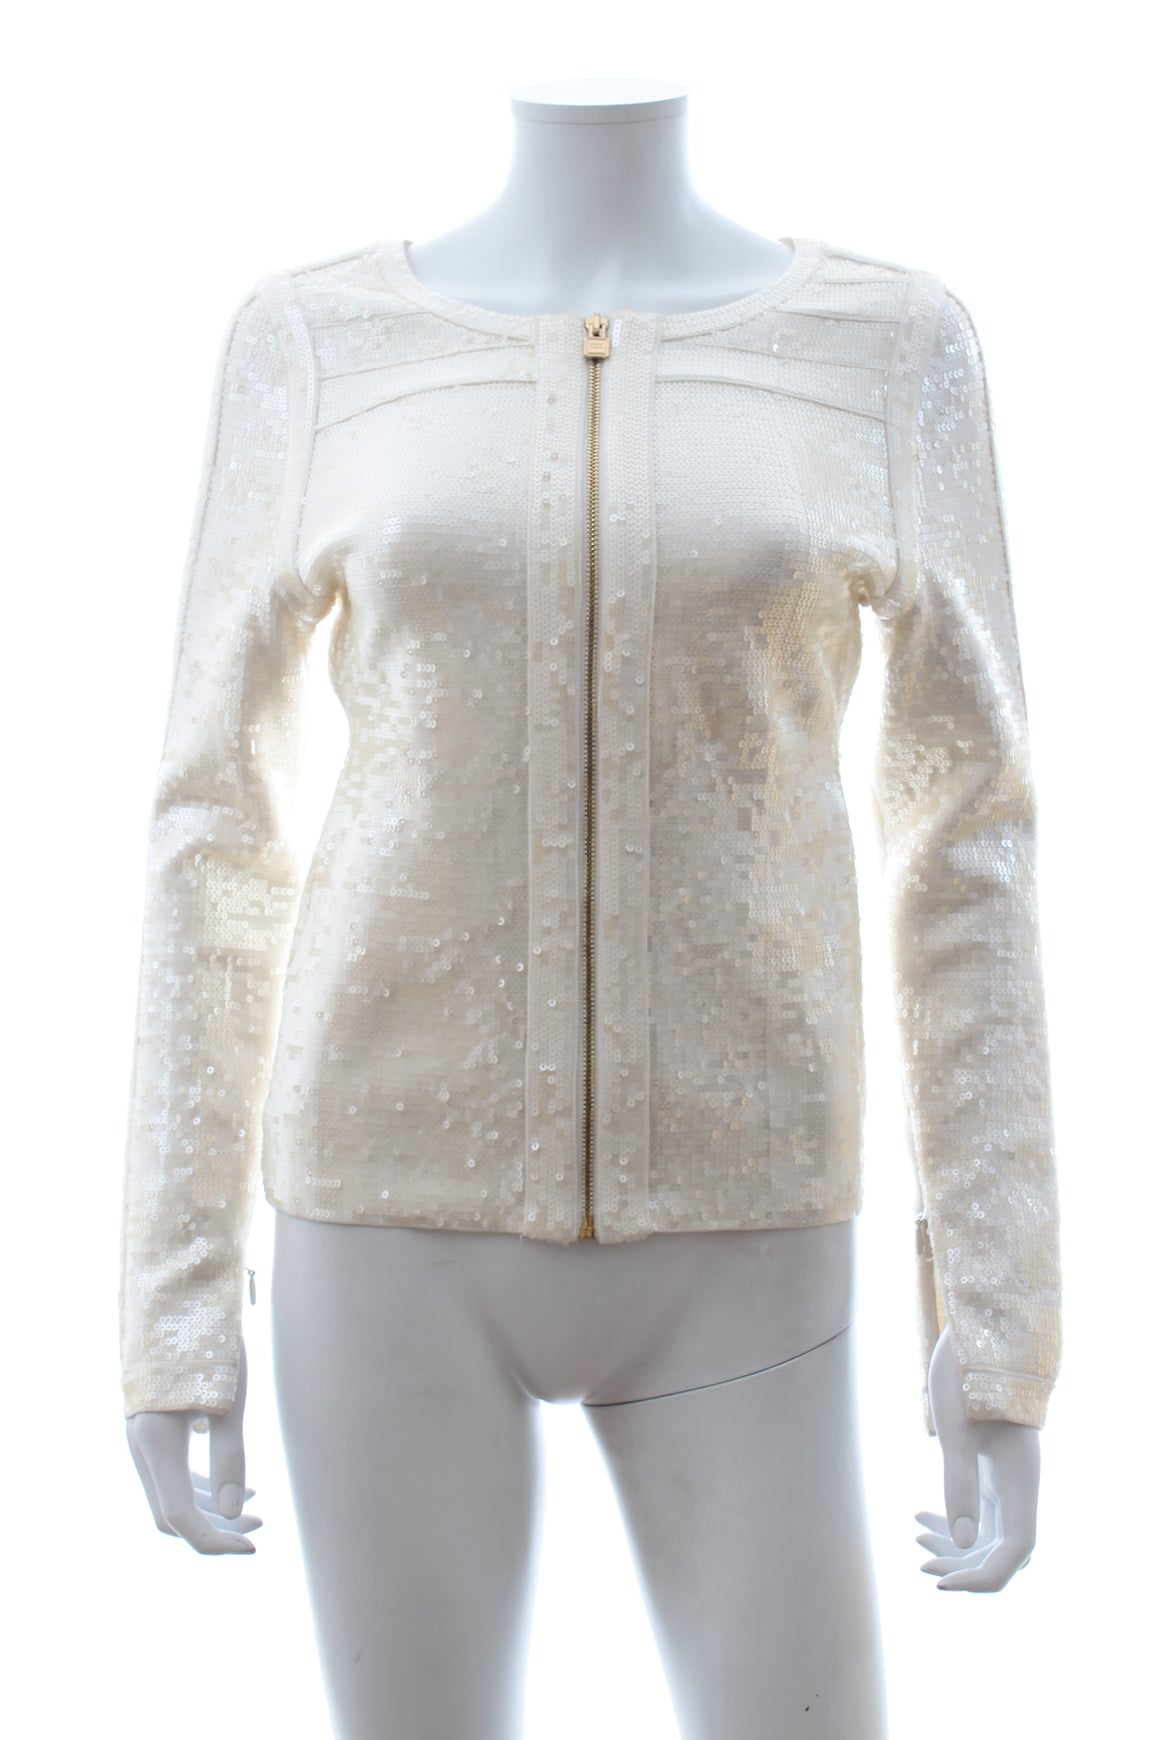 Herve Leger 'Daphne' Sequin Embellished Jacket